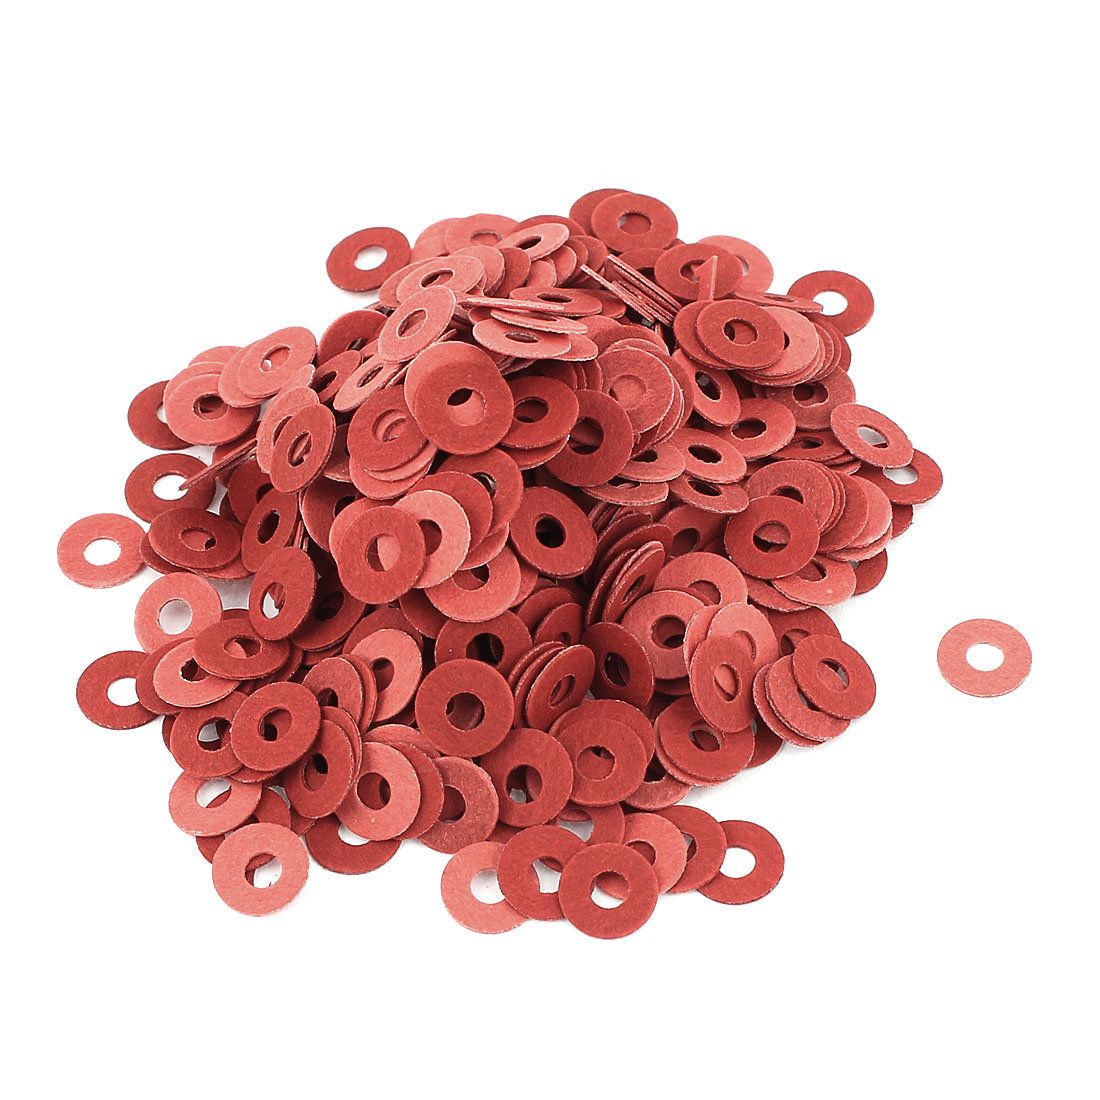 Fiber Flat Insulating Washer Ring 3mmx8mmx0.5mm 500Pcs Red for Screws